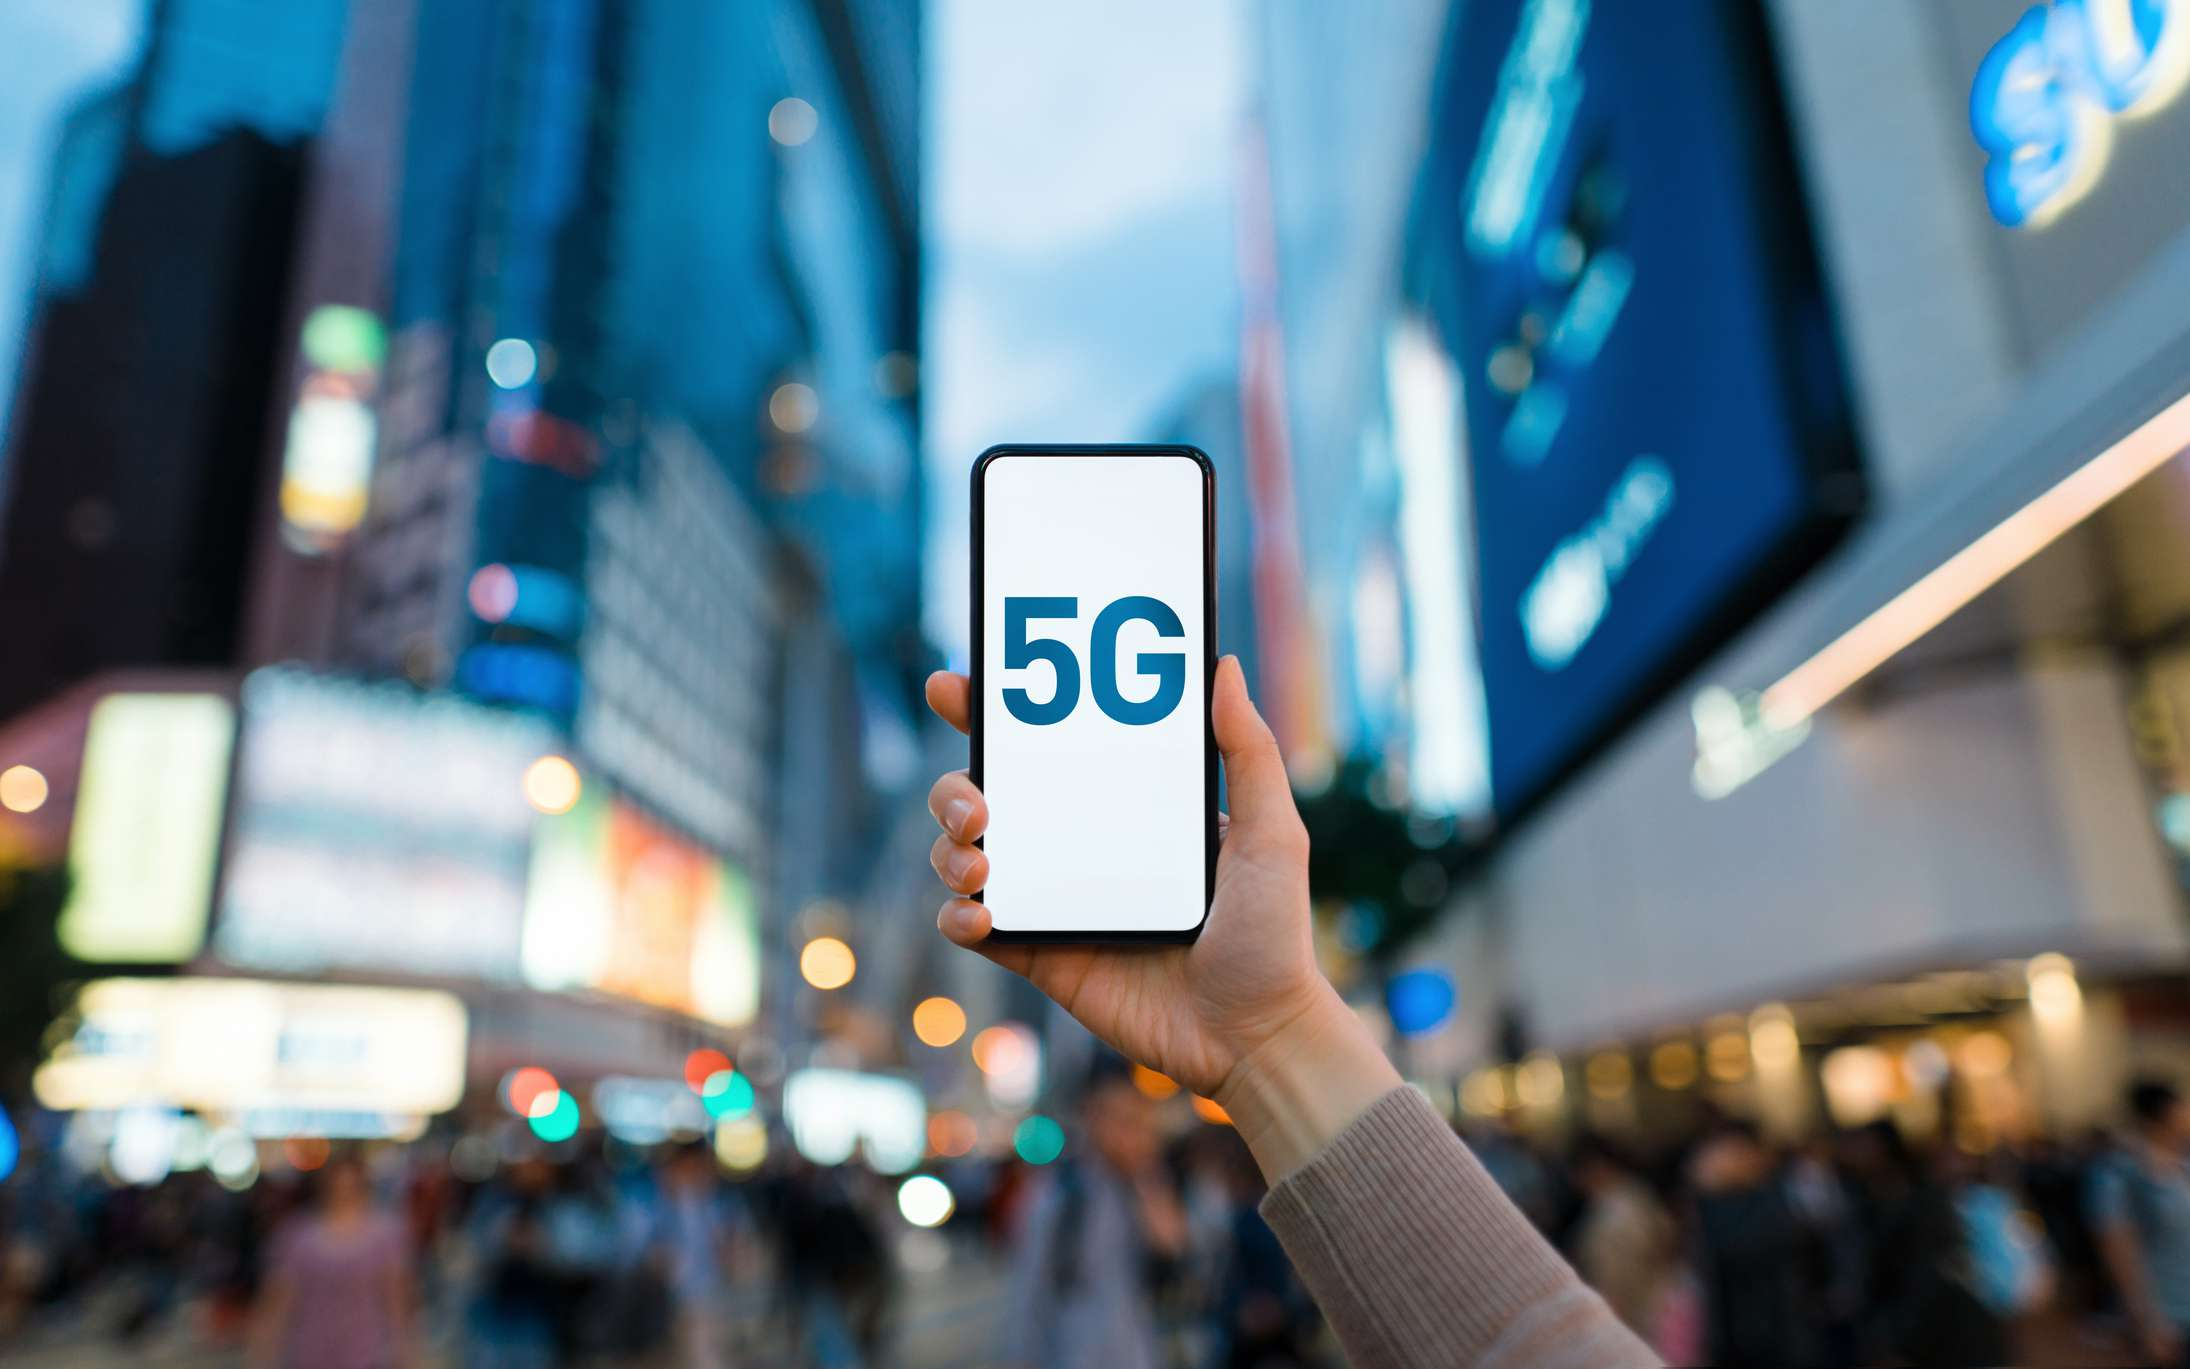 Someone holding a smartphone up in a busy city with '5G' displayed on the screen.